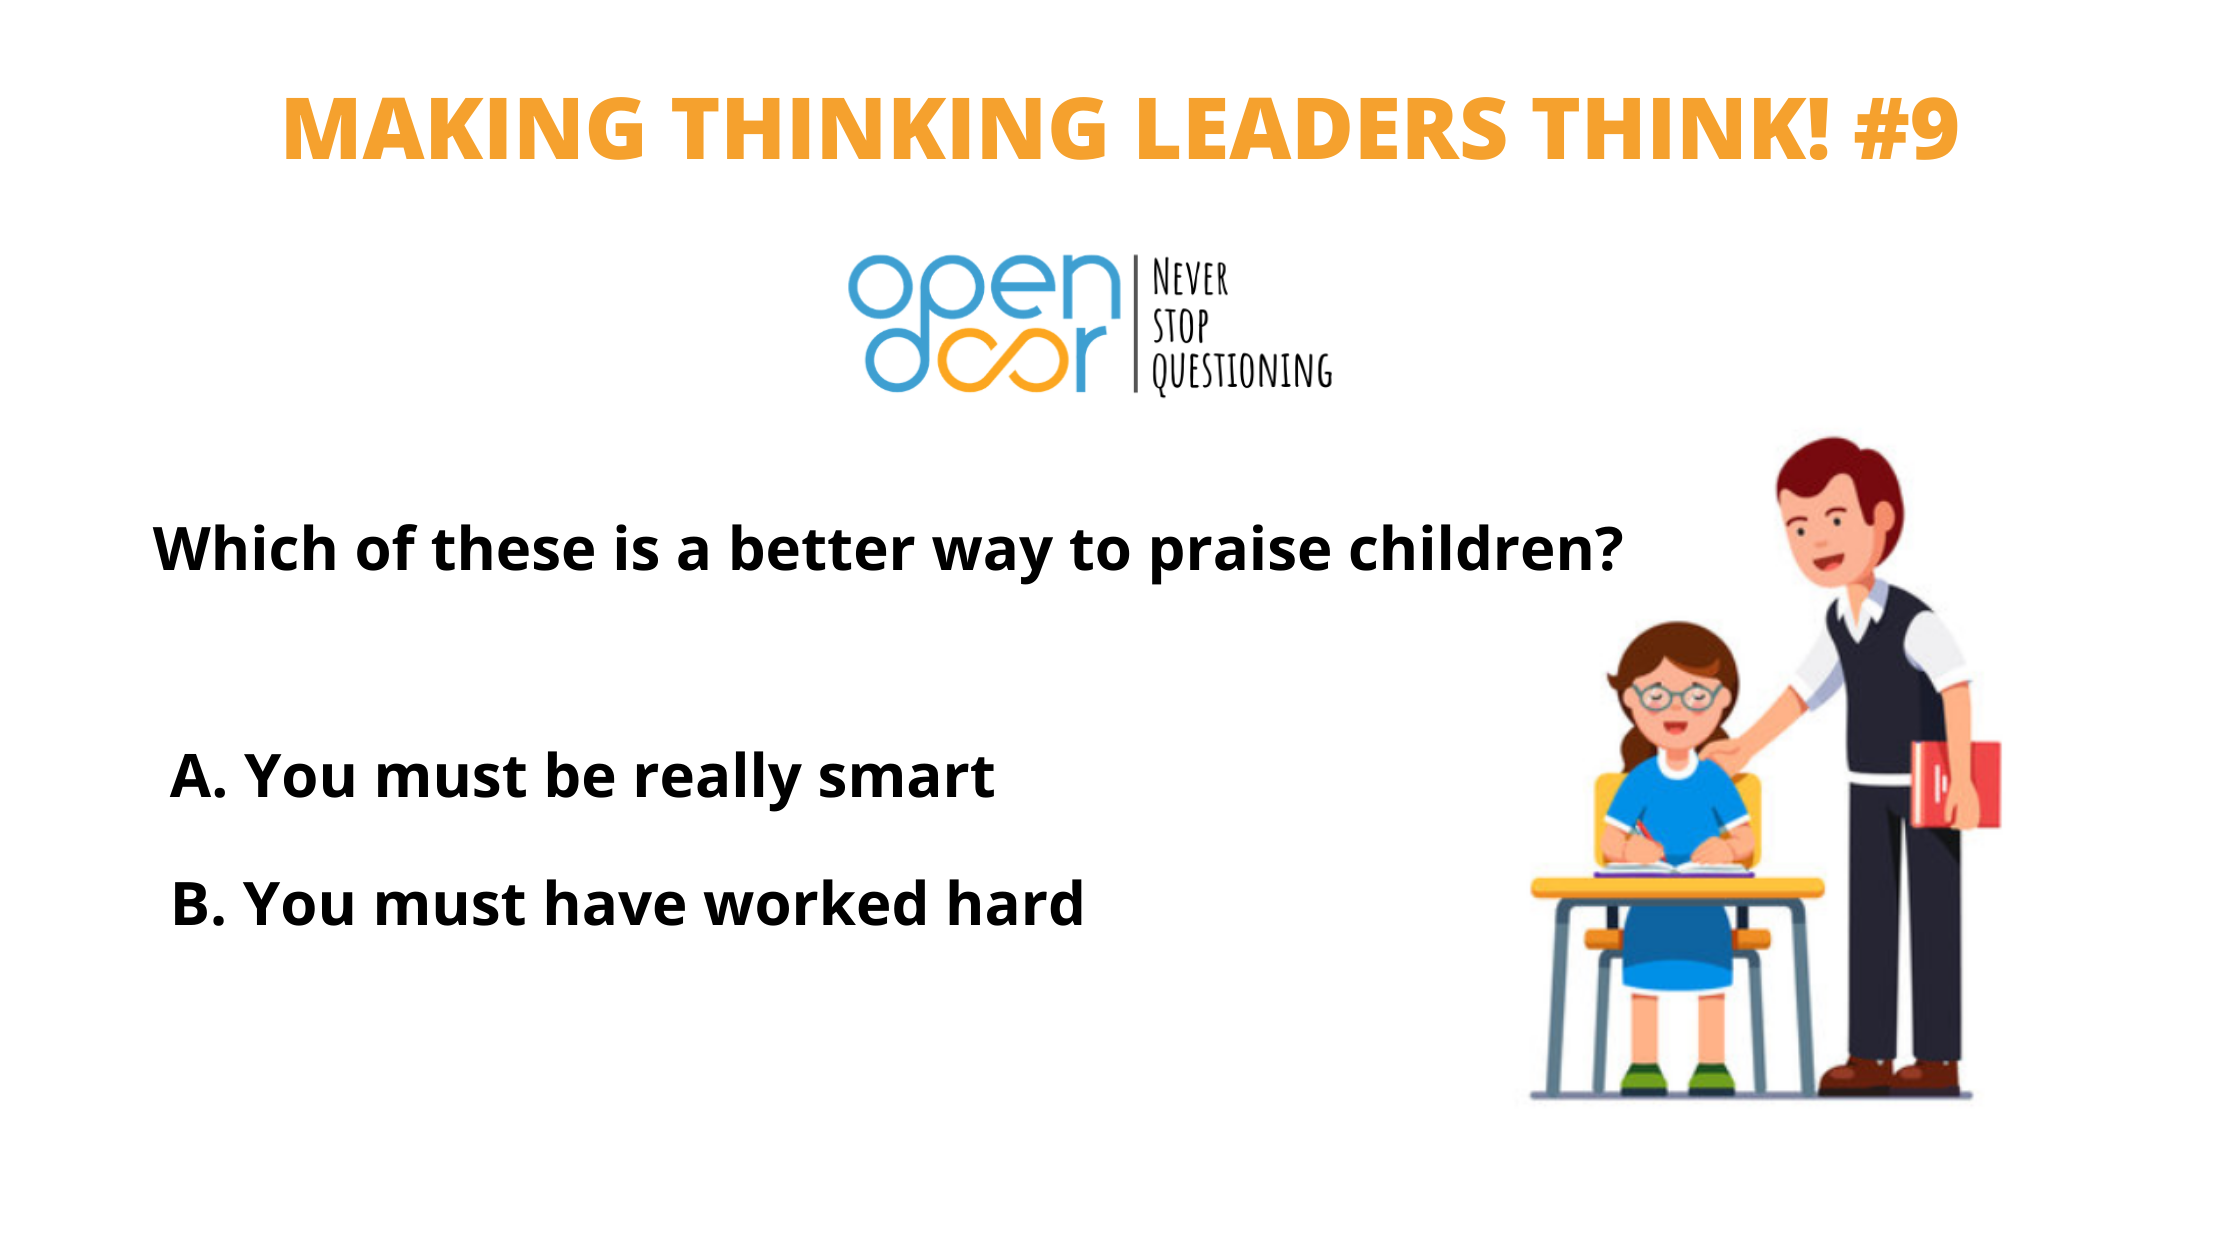 Q#9: Which of these is a better way to praise children? Winners Announced